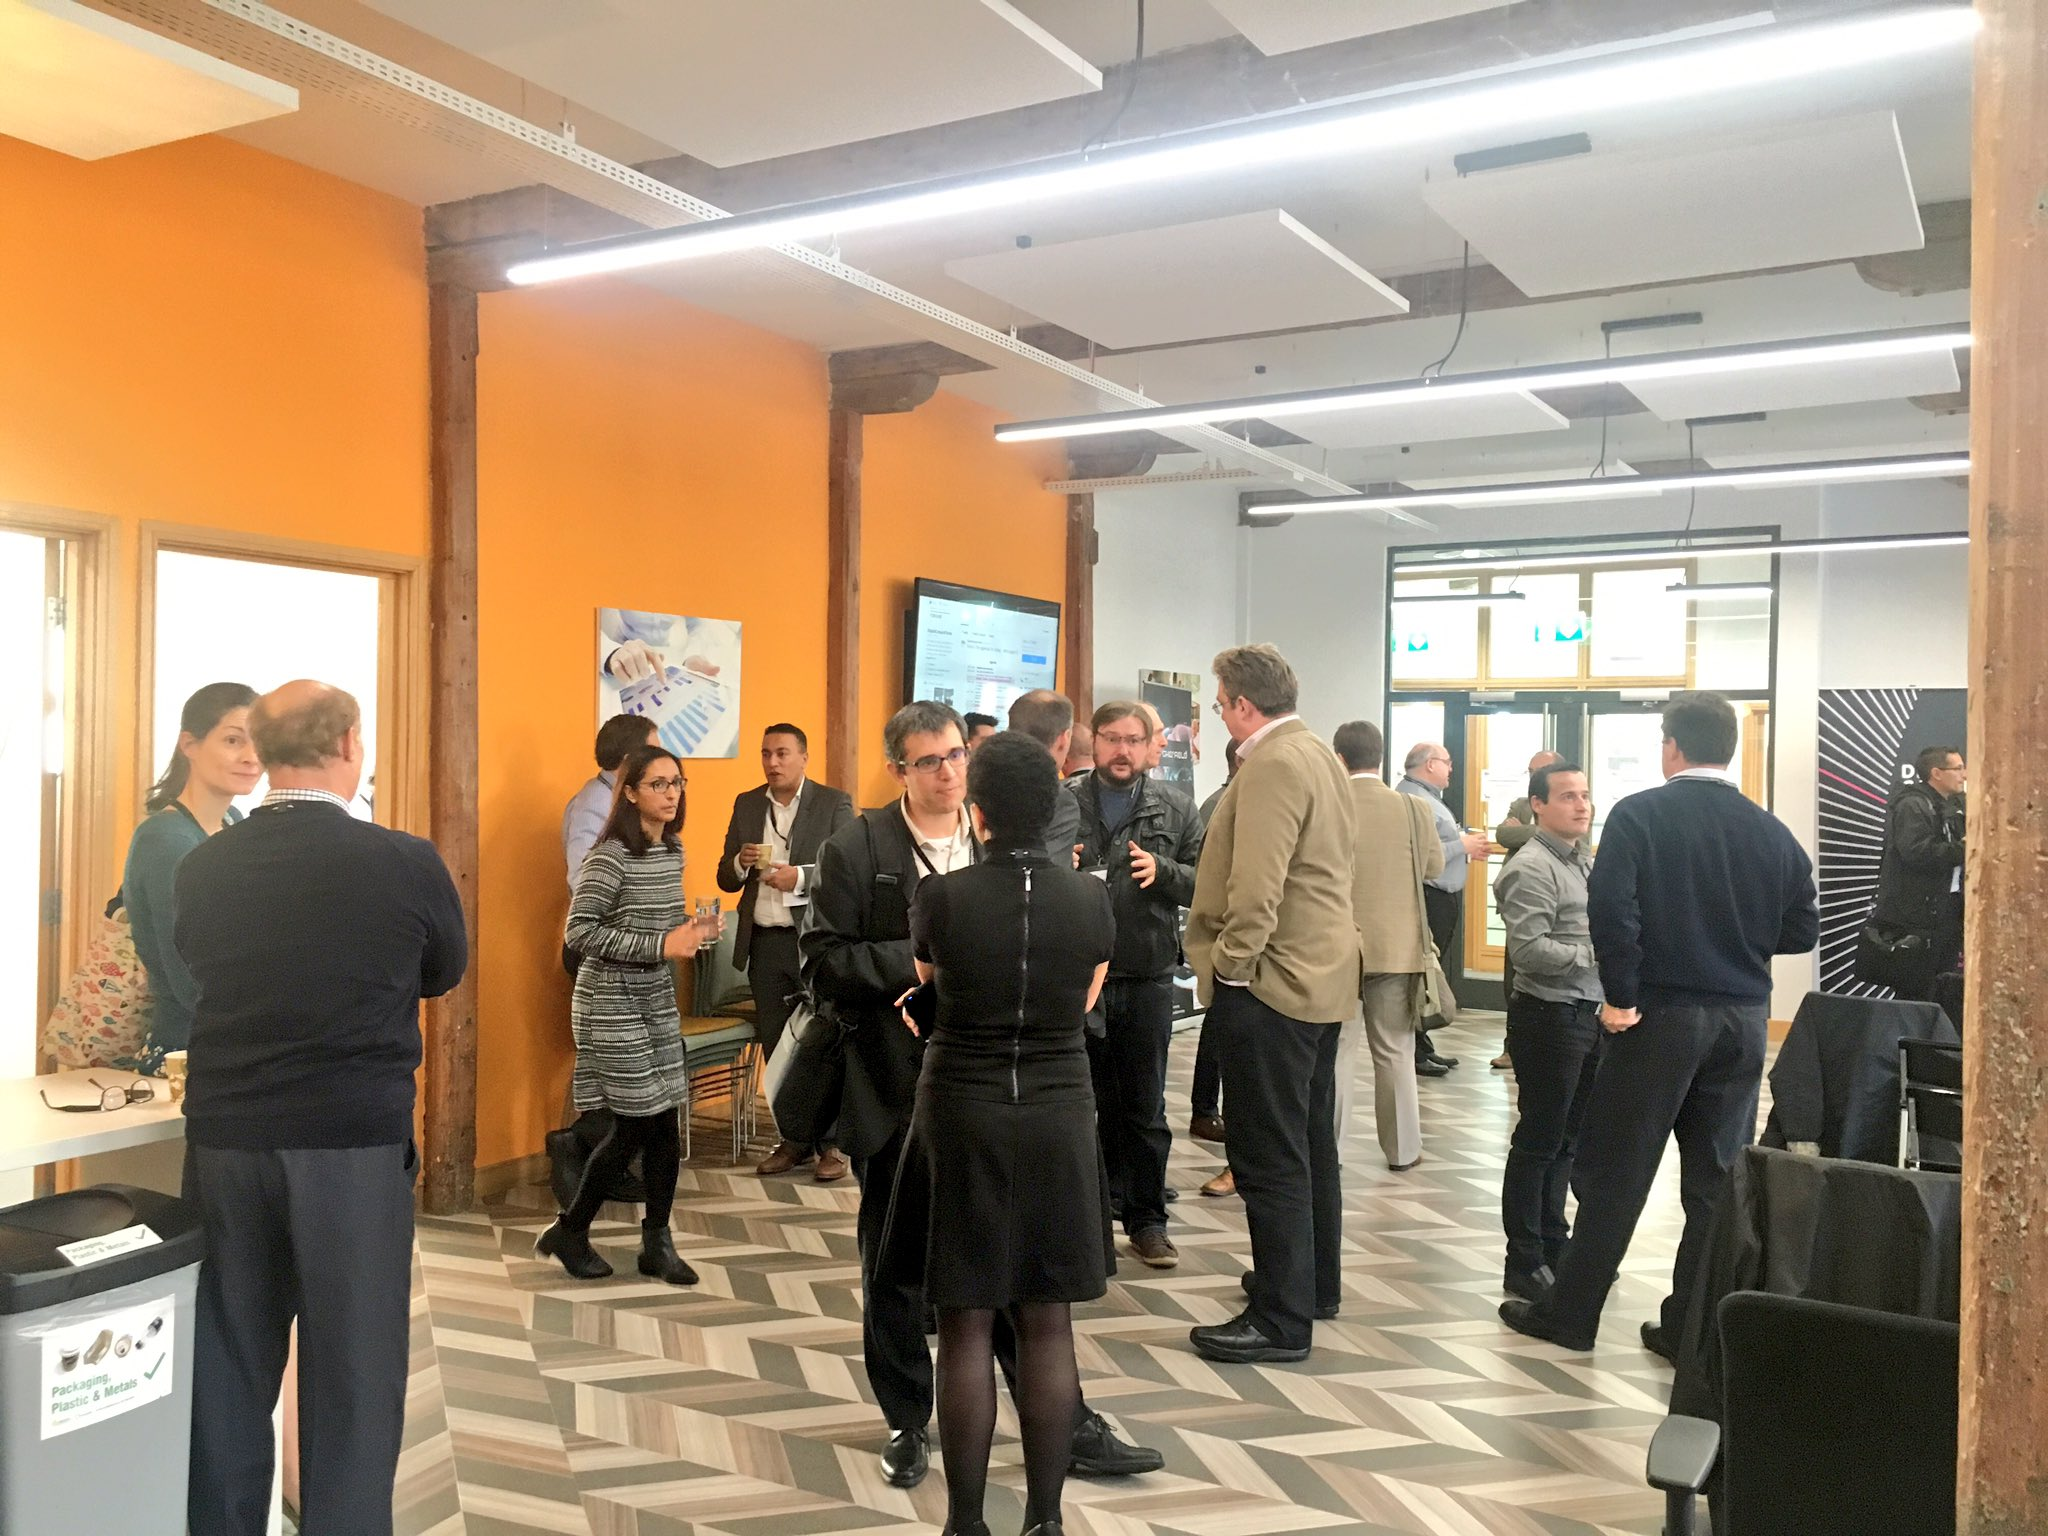 Breakout and networking lots of #digitalhealth and #tech talk #nhsopen16 @digitalhealthez https://t.co/UxiIORzps2